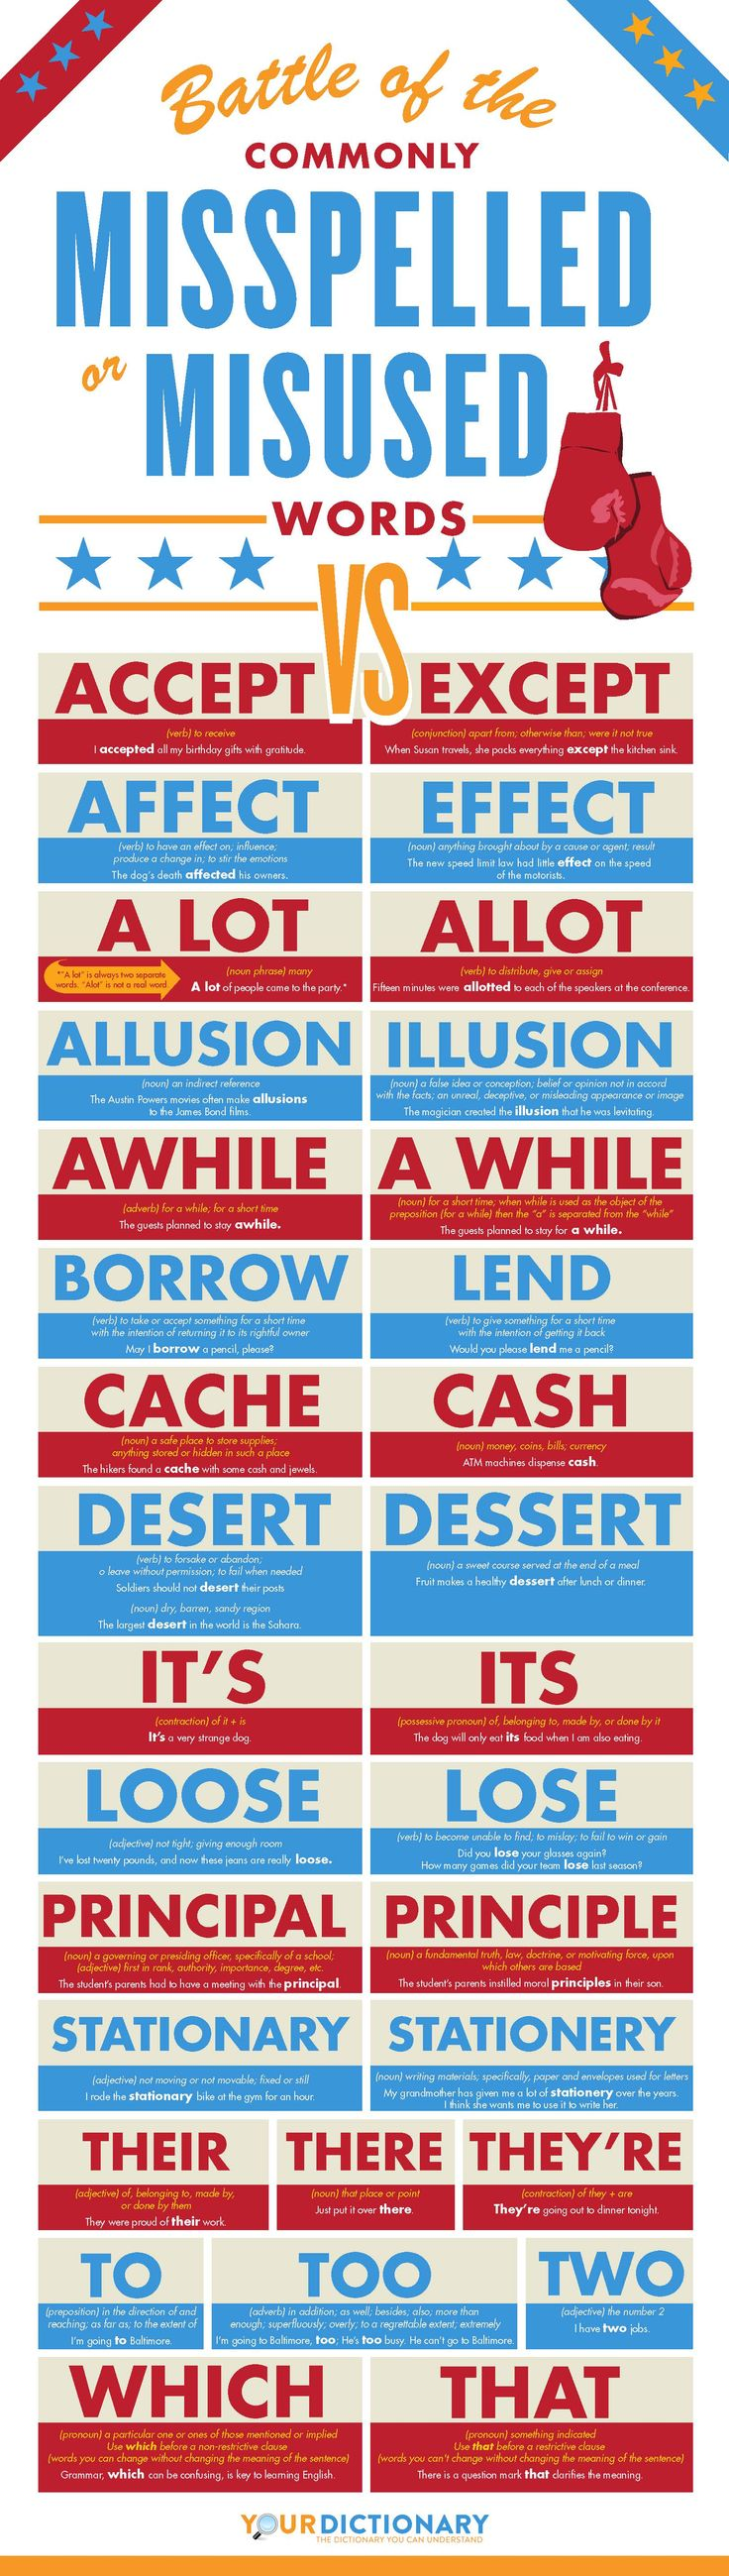 Commonly Misspelled or Misused Words #infographic